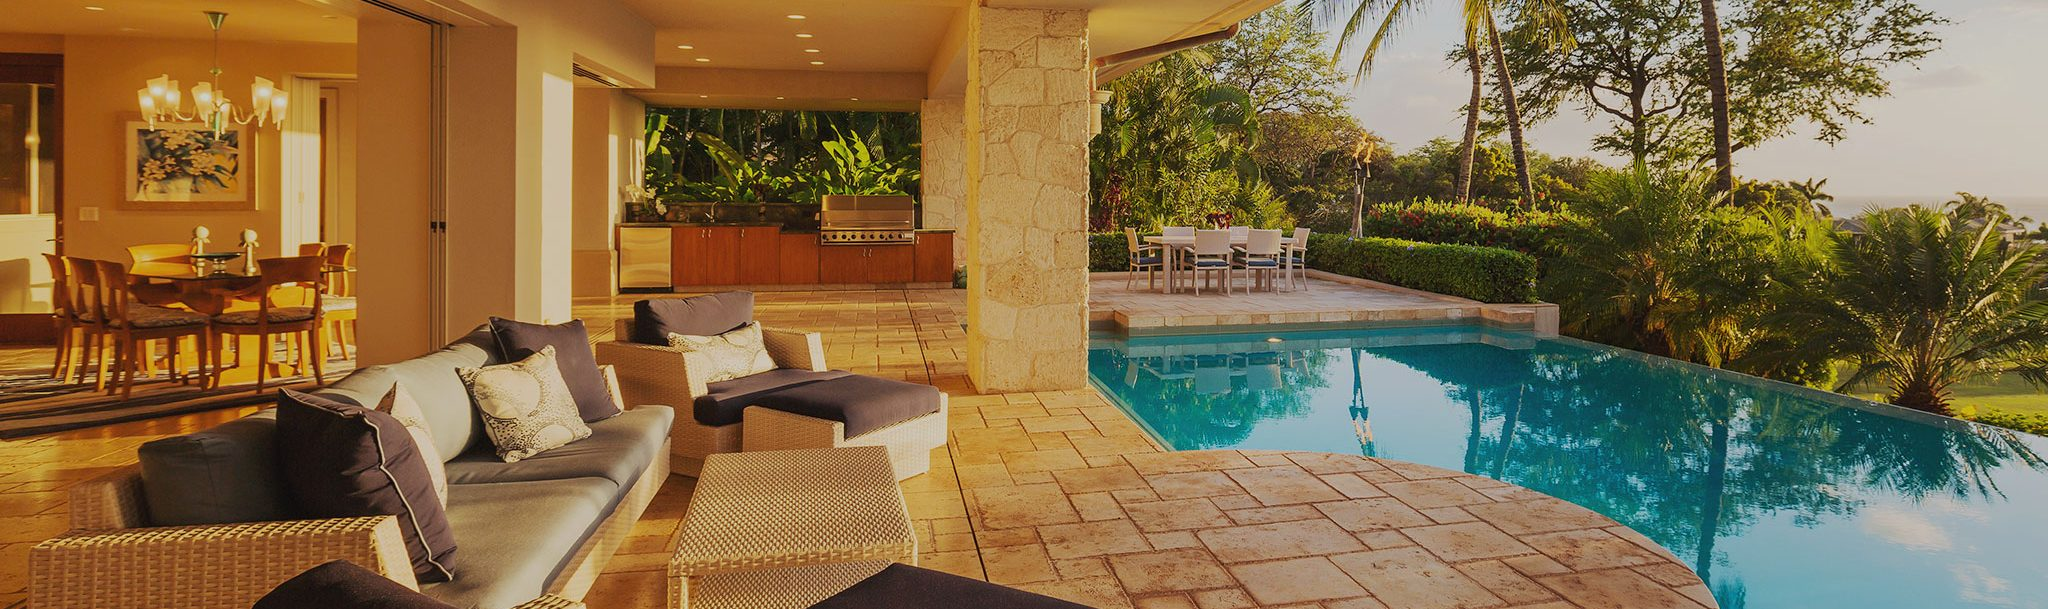 Pool in nice home cleaned by groundskeeper